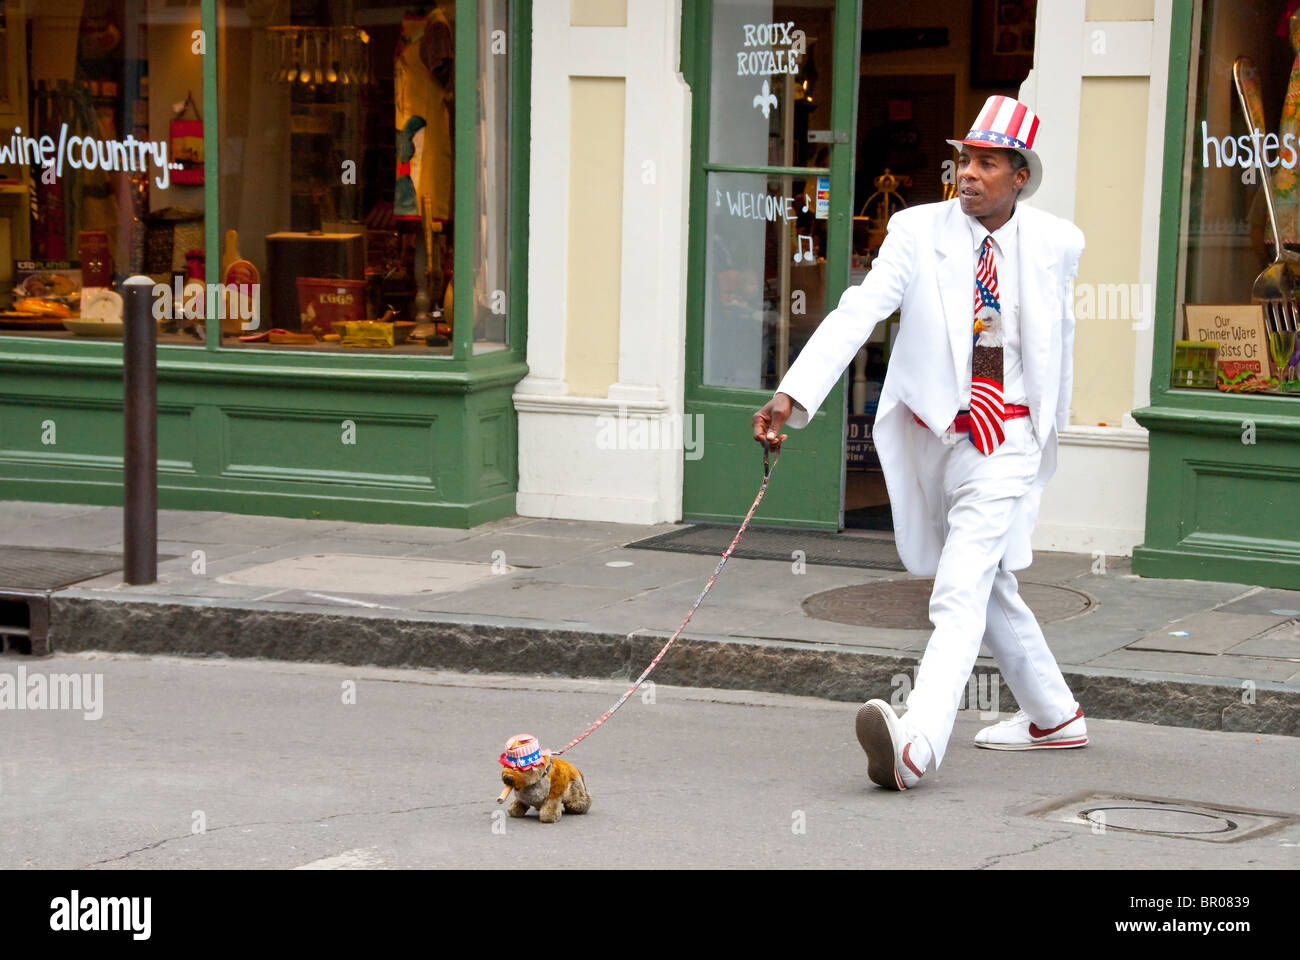 Street performer in French Quarter of New Orleans, Louisiana, USA - Stock Image